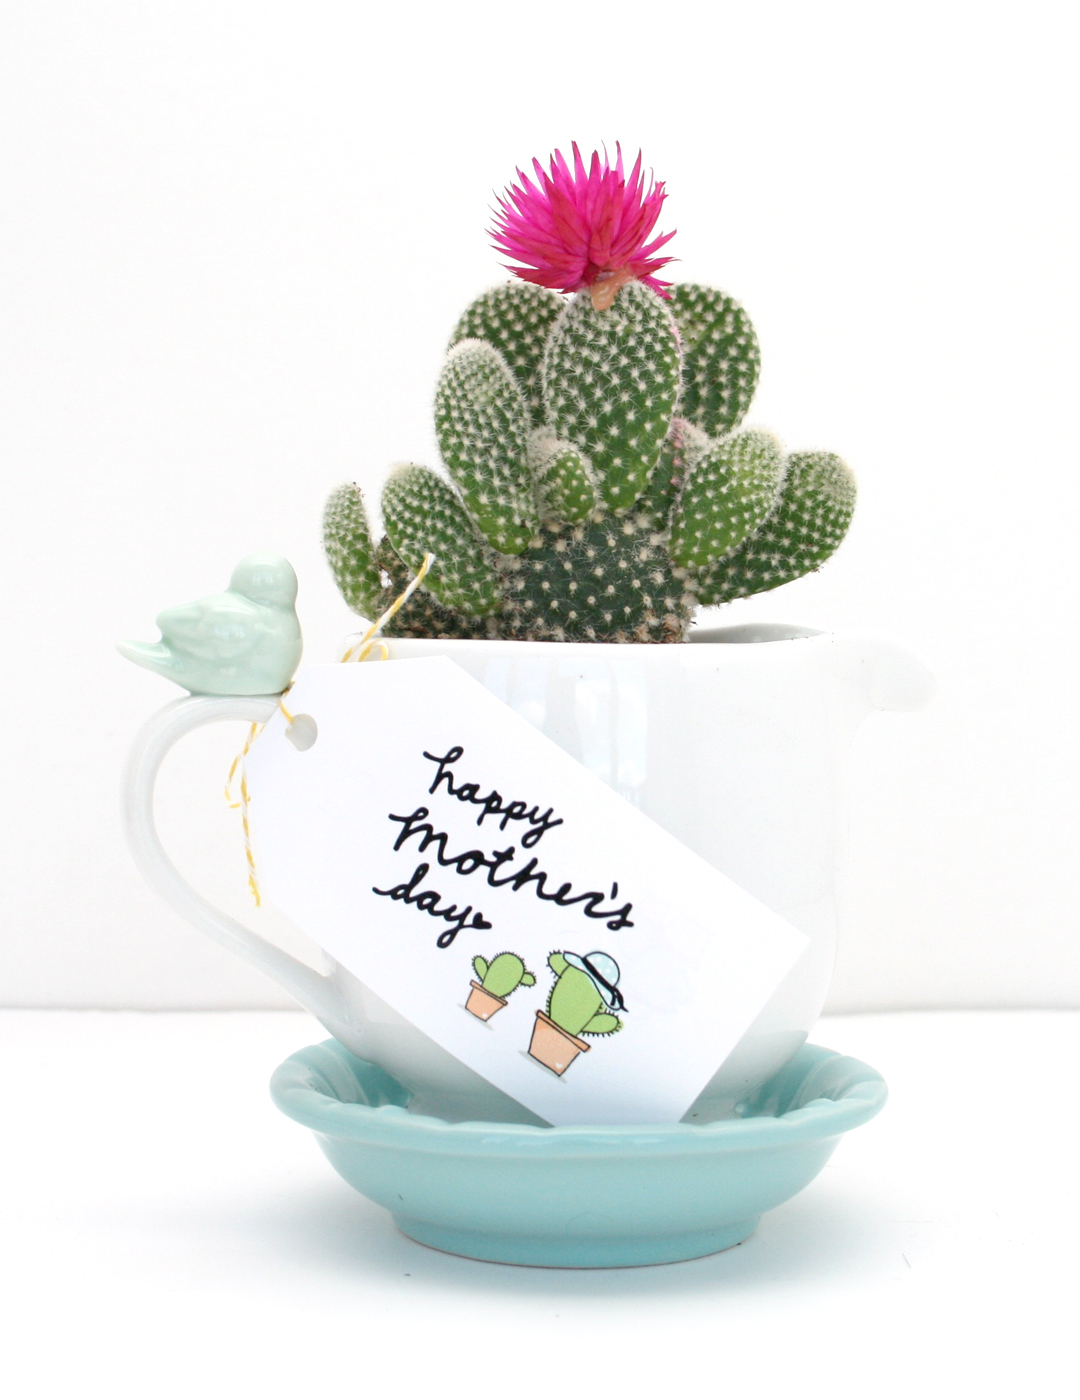 Happy Mothers Day Gift: Cactus in a Mug and Free Printable